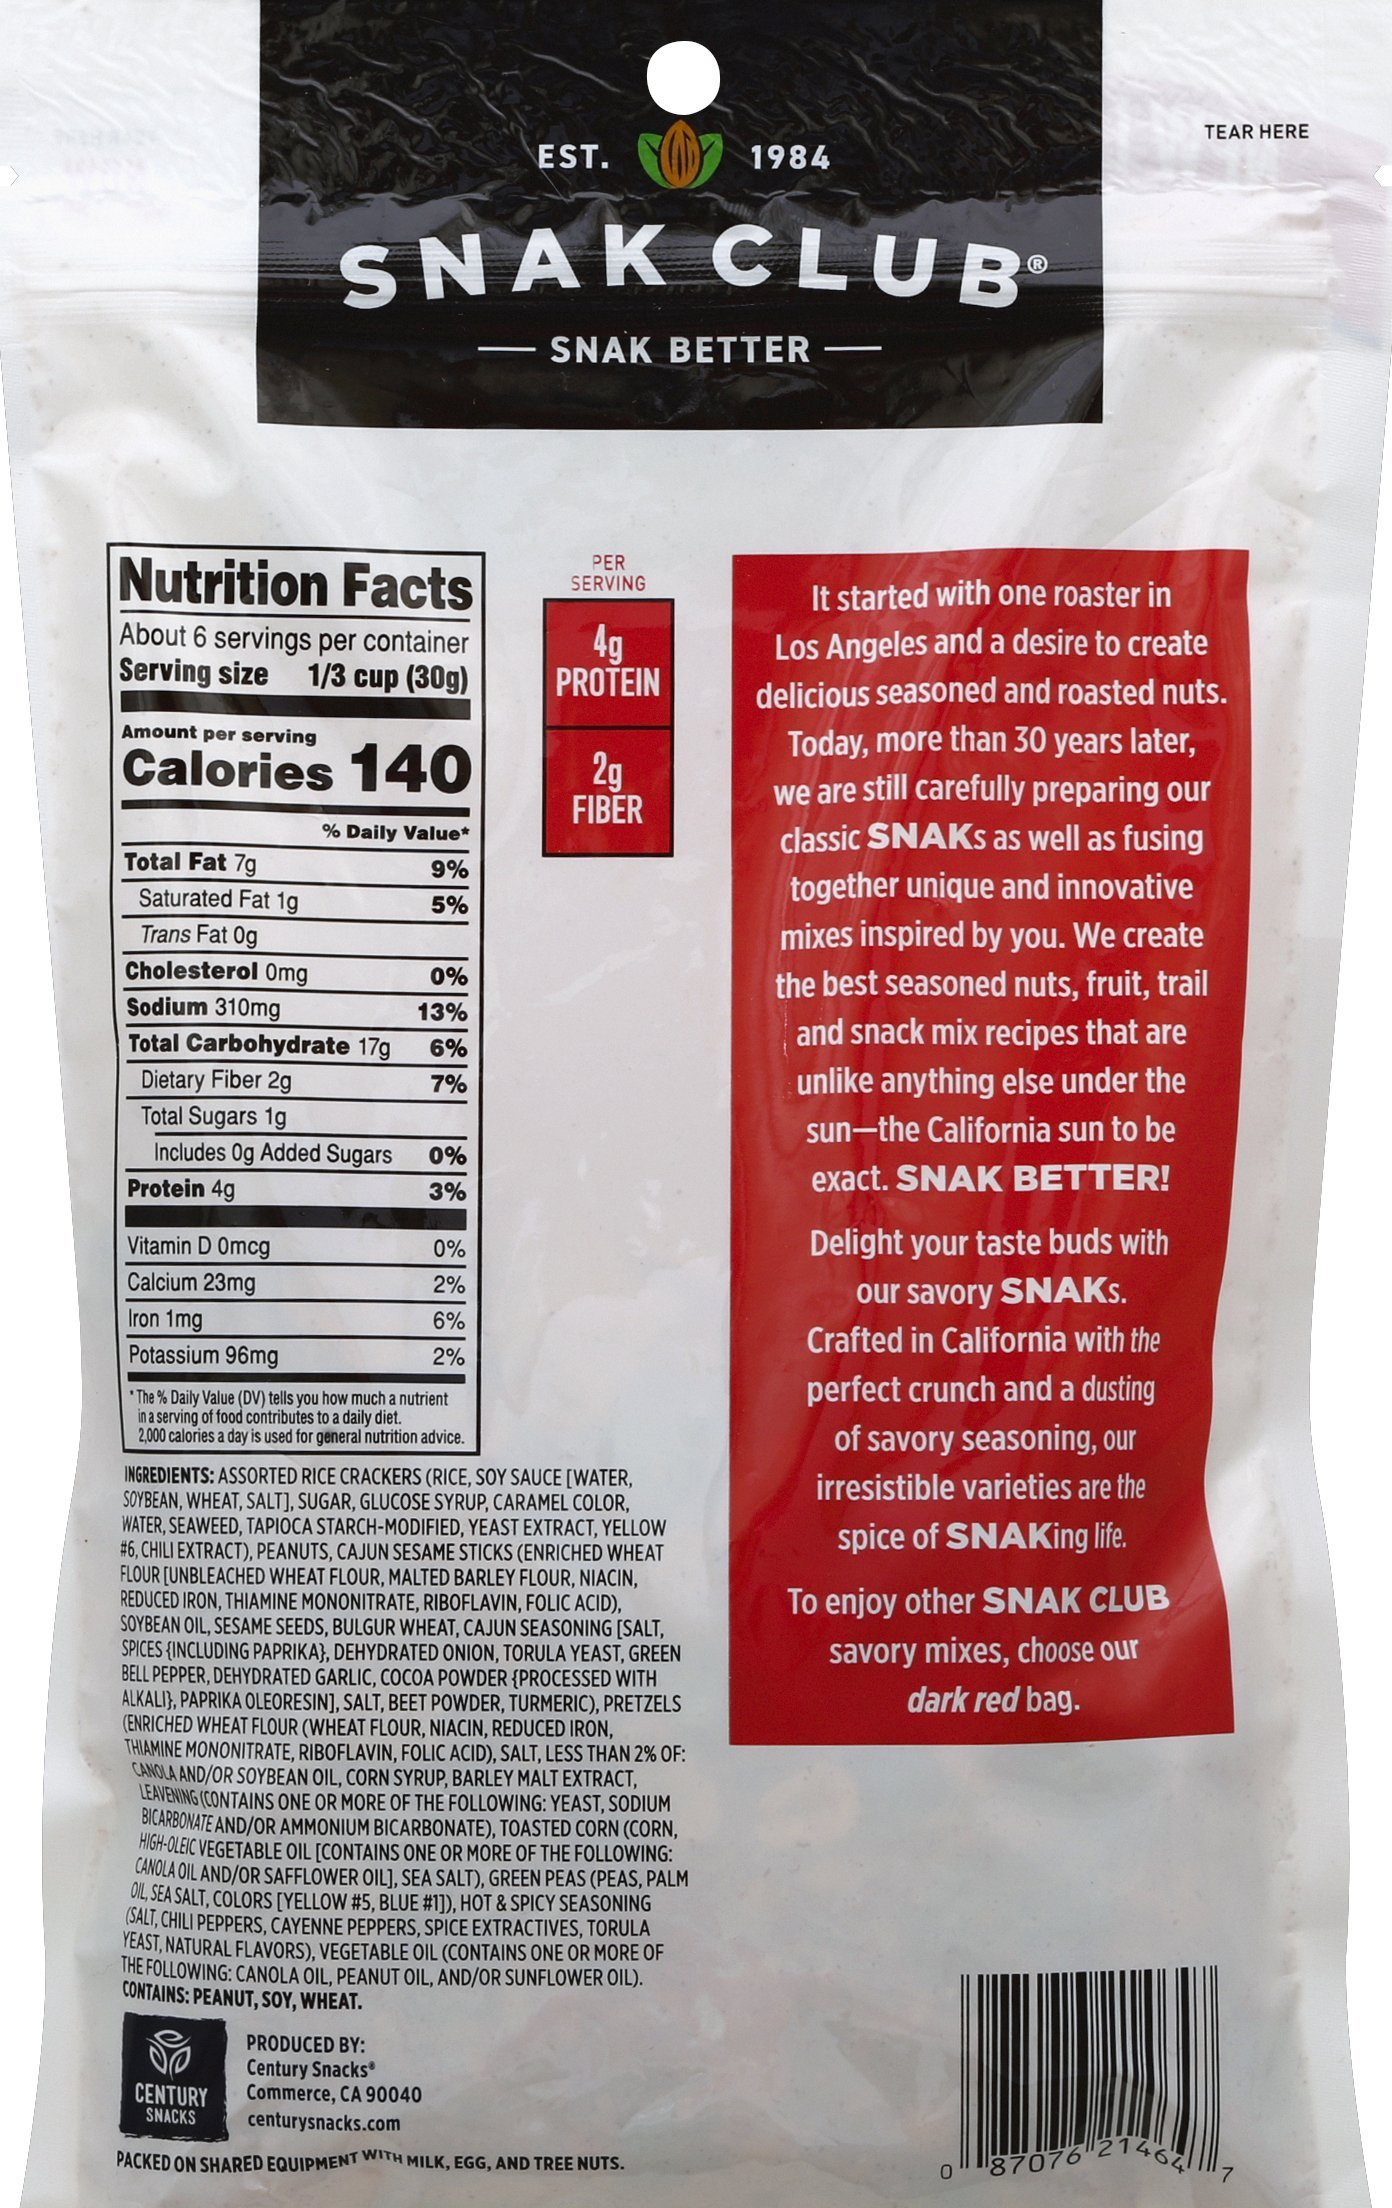 Snak Club Spicy Party Snack Mix, 6.75-Ounces, 6-Pack by Snak Club (Image #1)